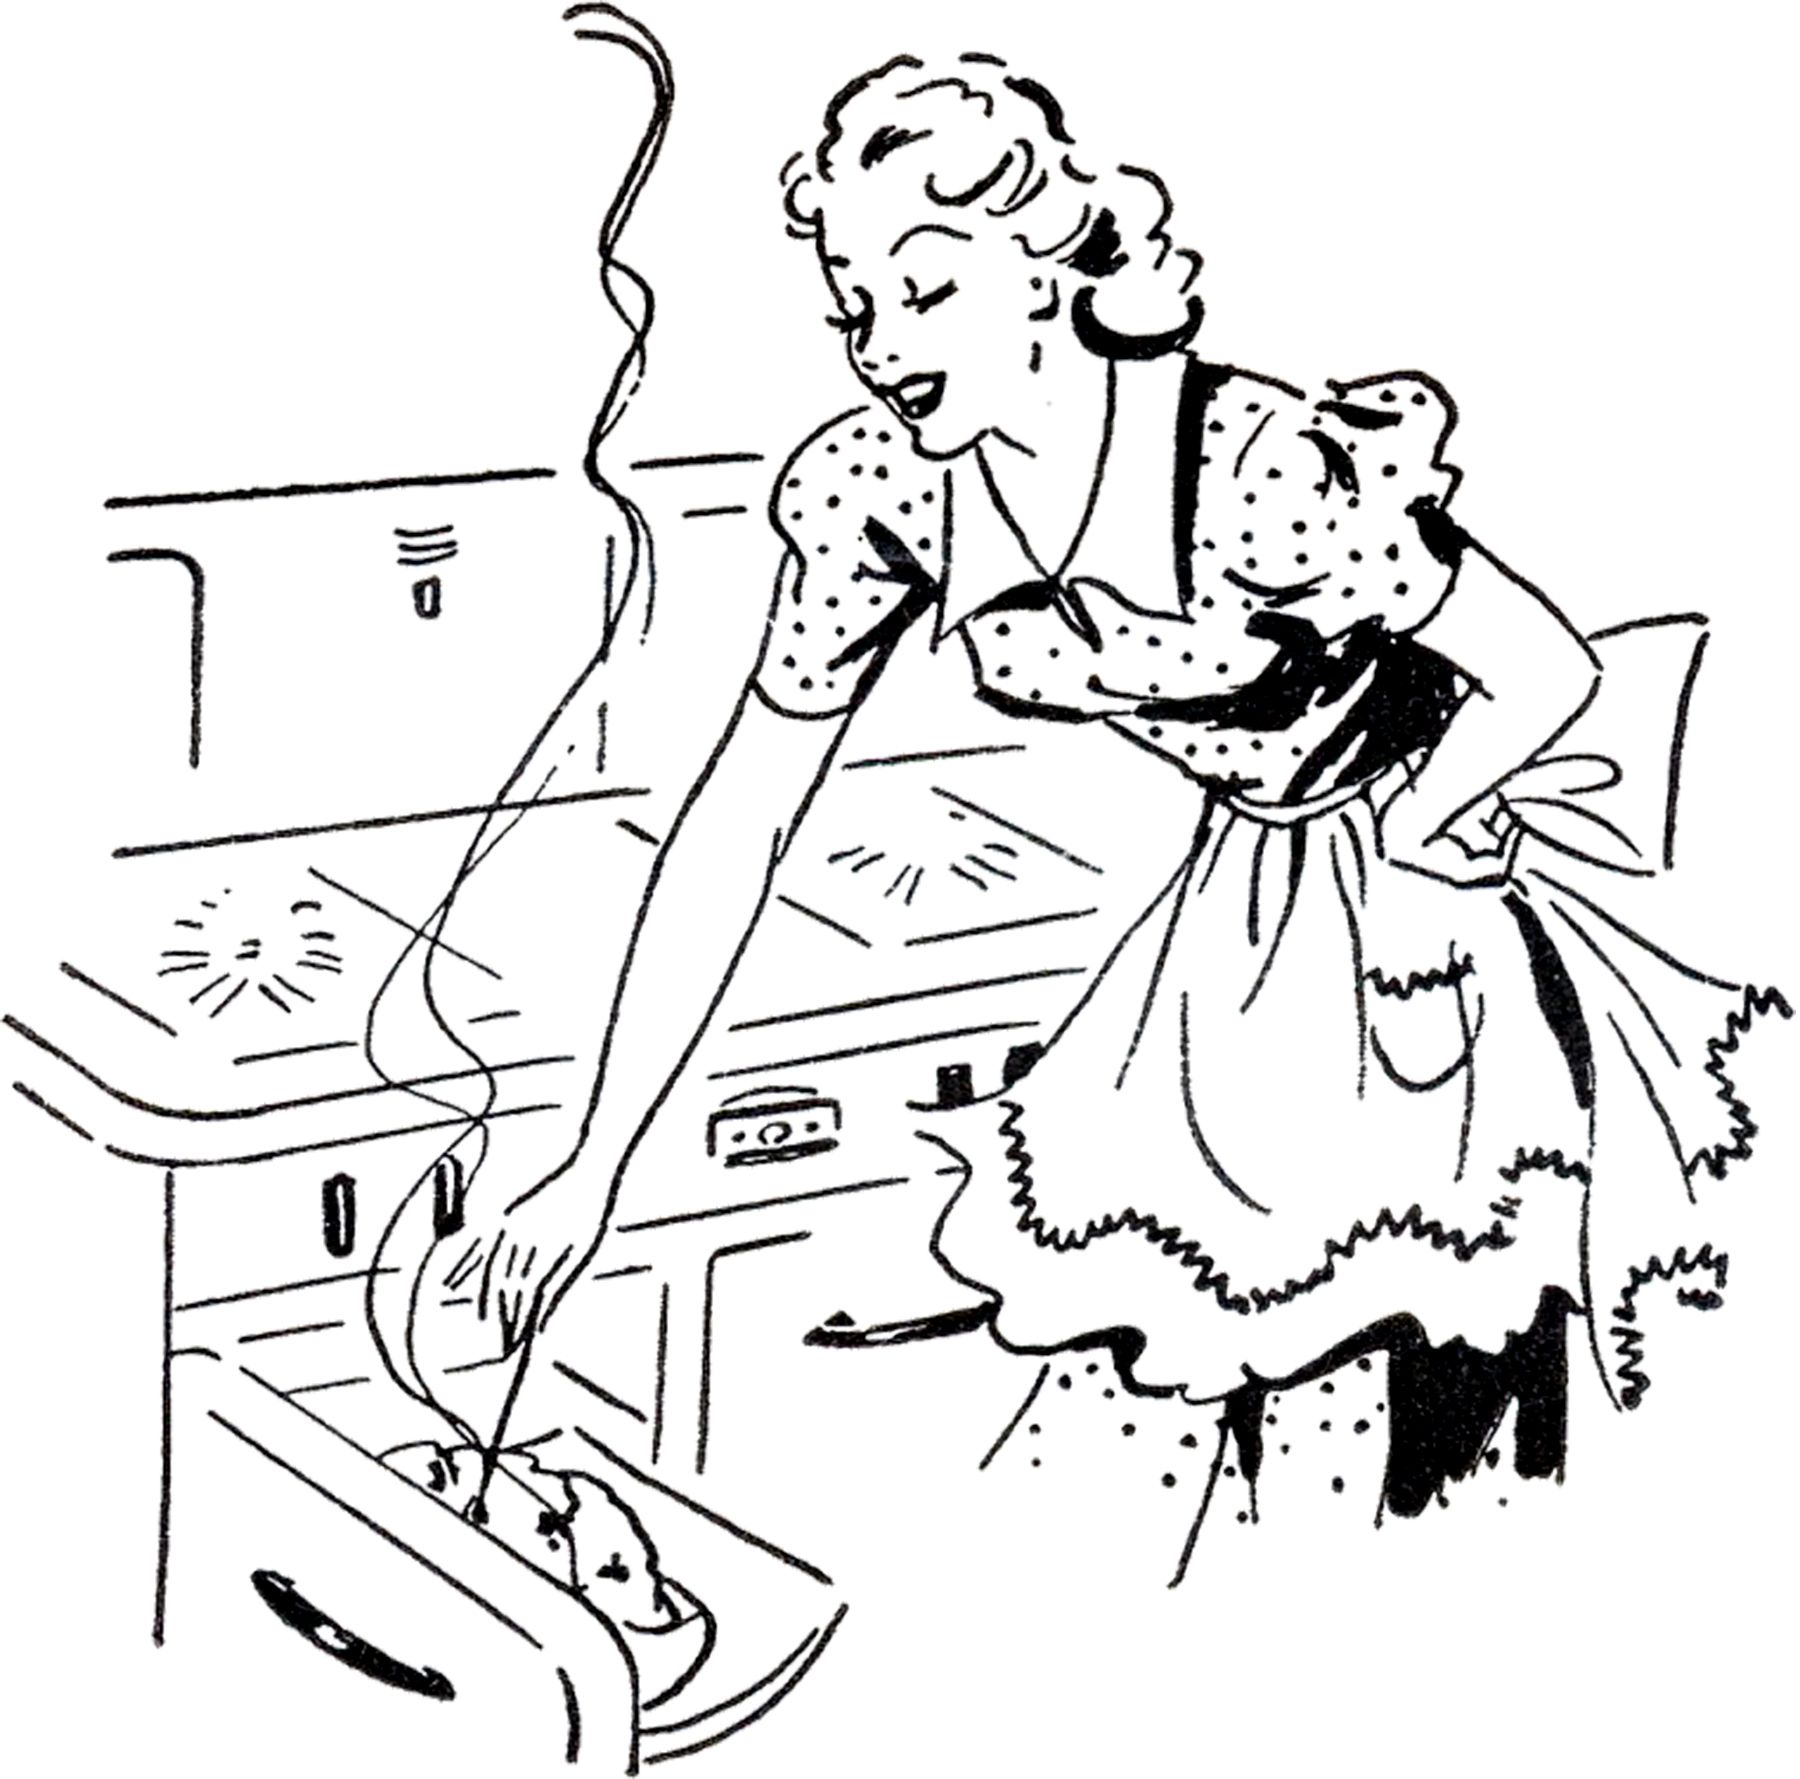 Adorable Retro Cooking Mom Image | Kitchening | Graphics ...